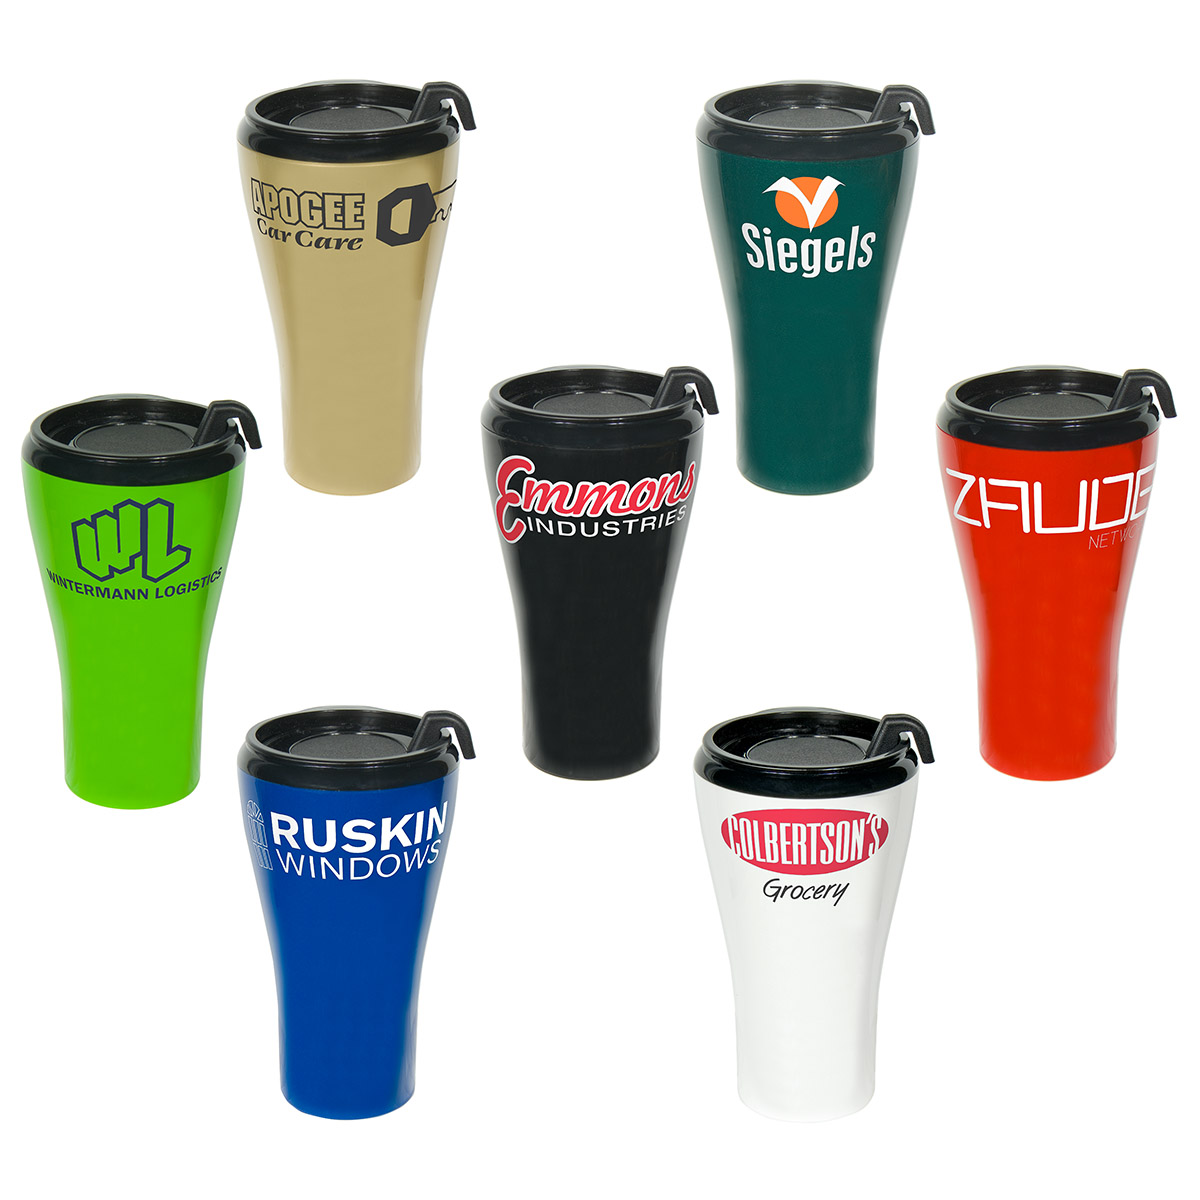 KINGSTON 16 oz. Tumbler, DWI-KS17 - 1 Colour Imprint